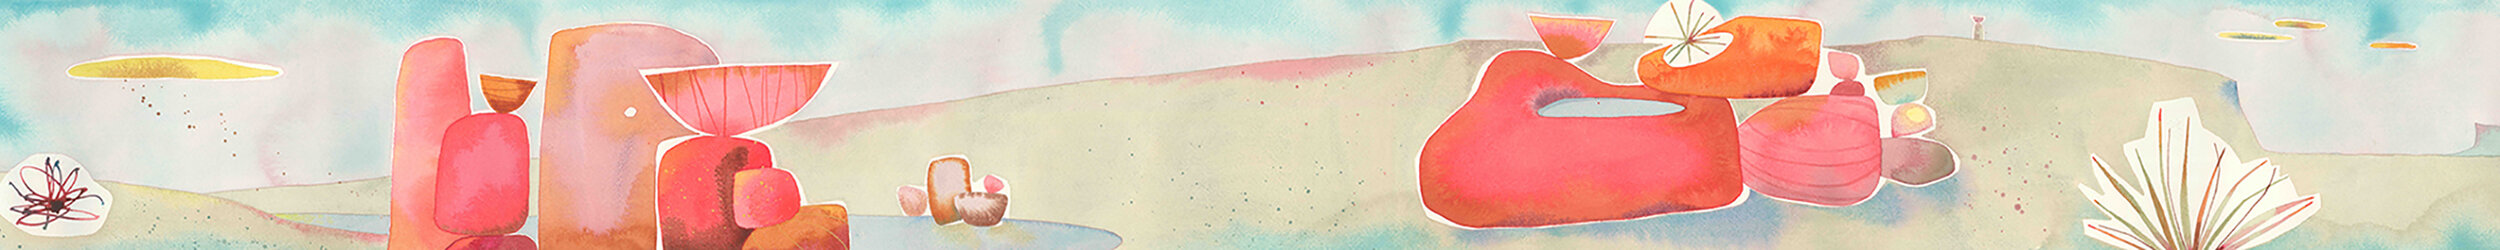 Flinders To Fleurieu #1. Watercolour on Arches, 300mm x 2500mm.